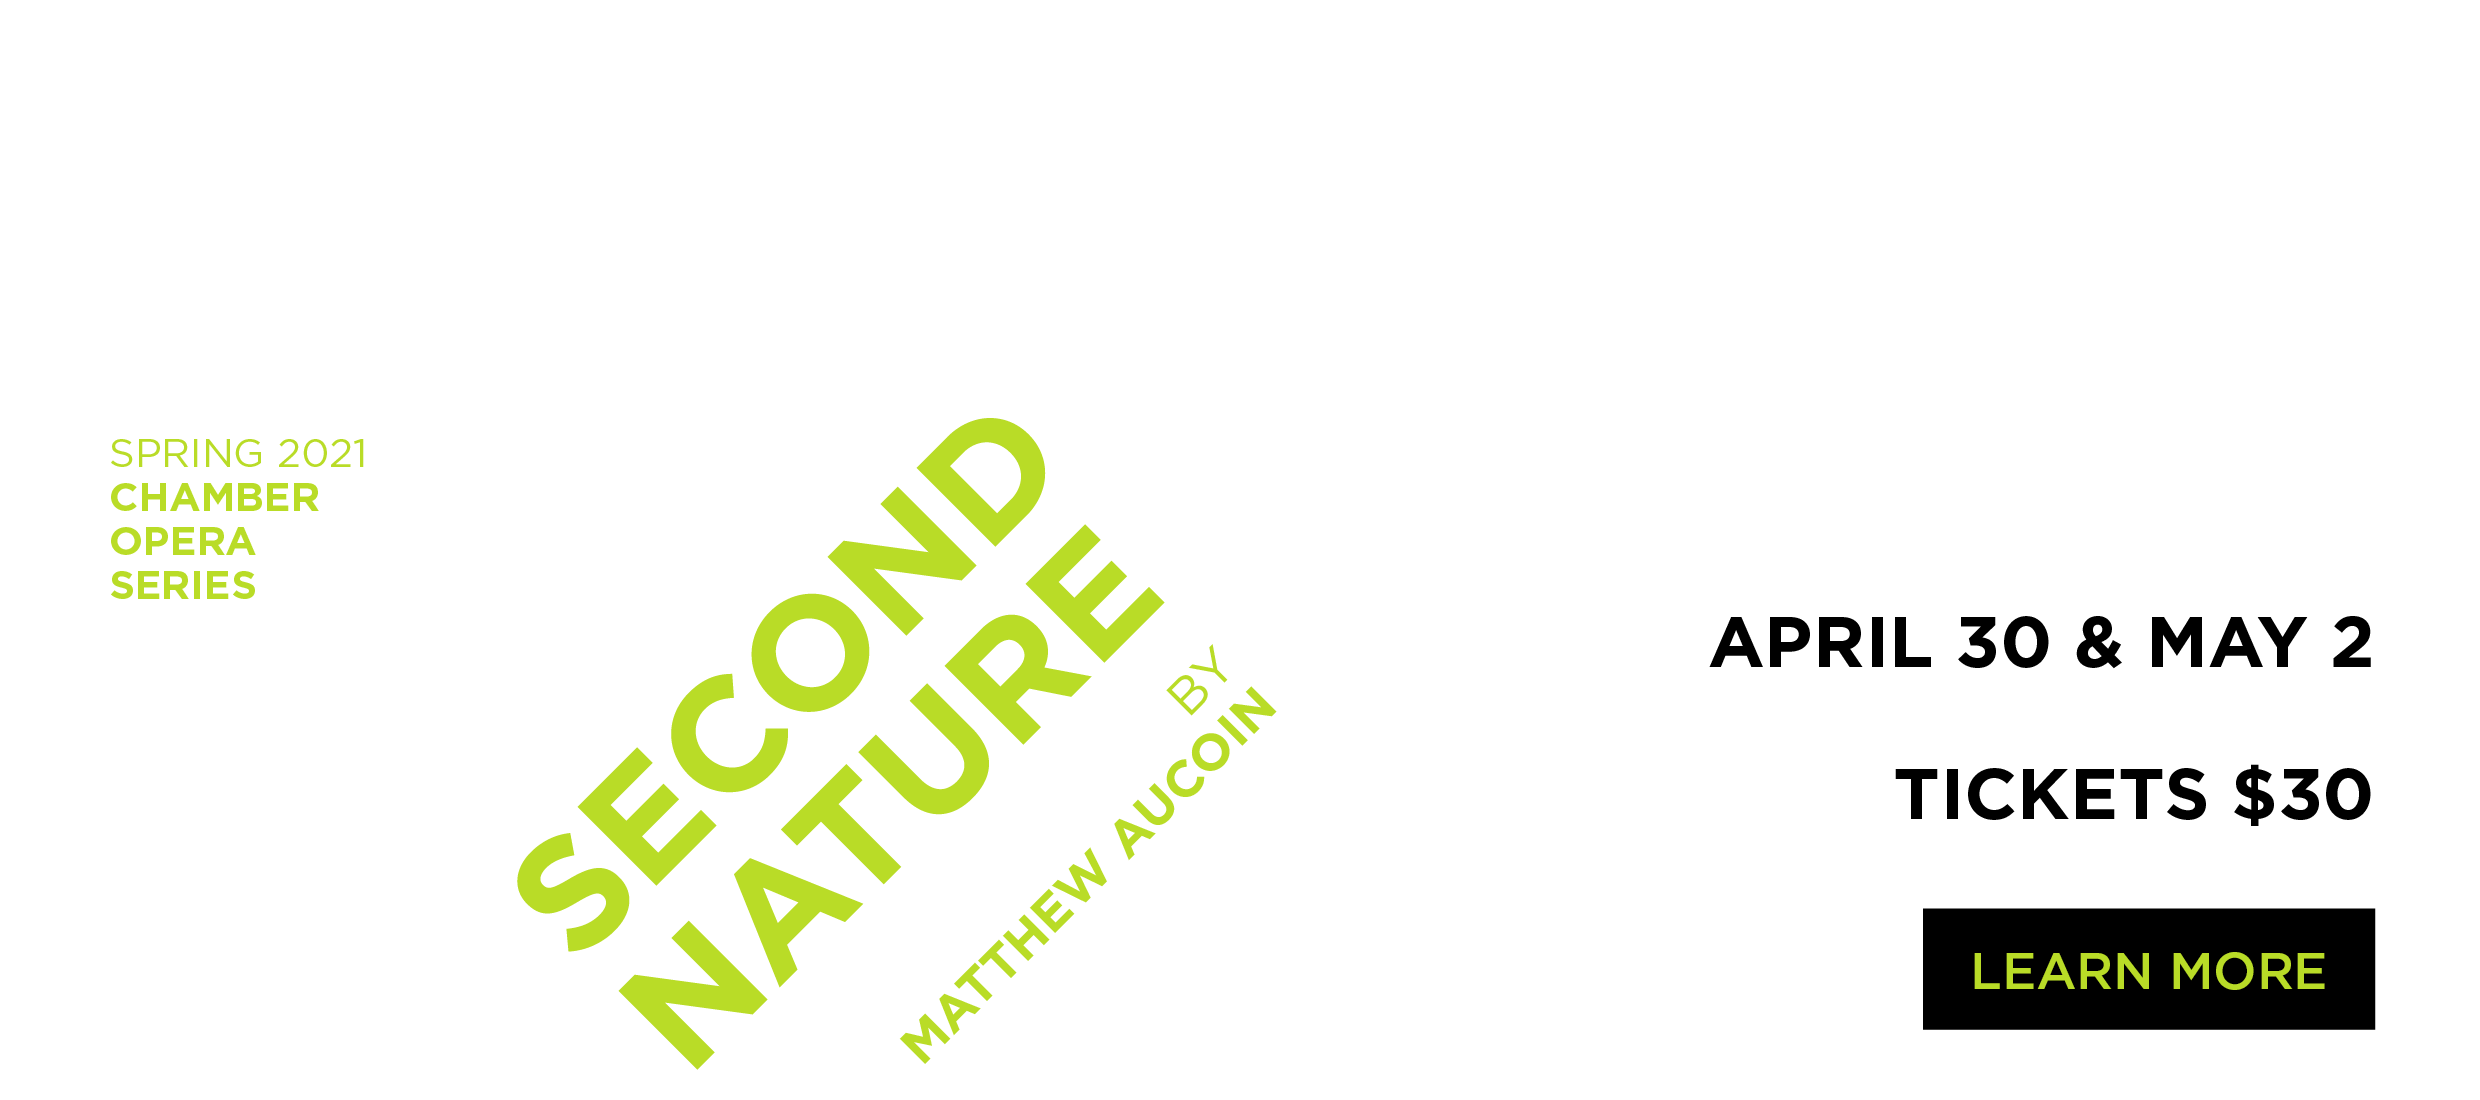 Spring 2021 Chamber Opera Series. Second Nature by Matthew Aucoin. Tickets $30. Learn More.